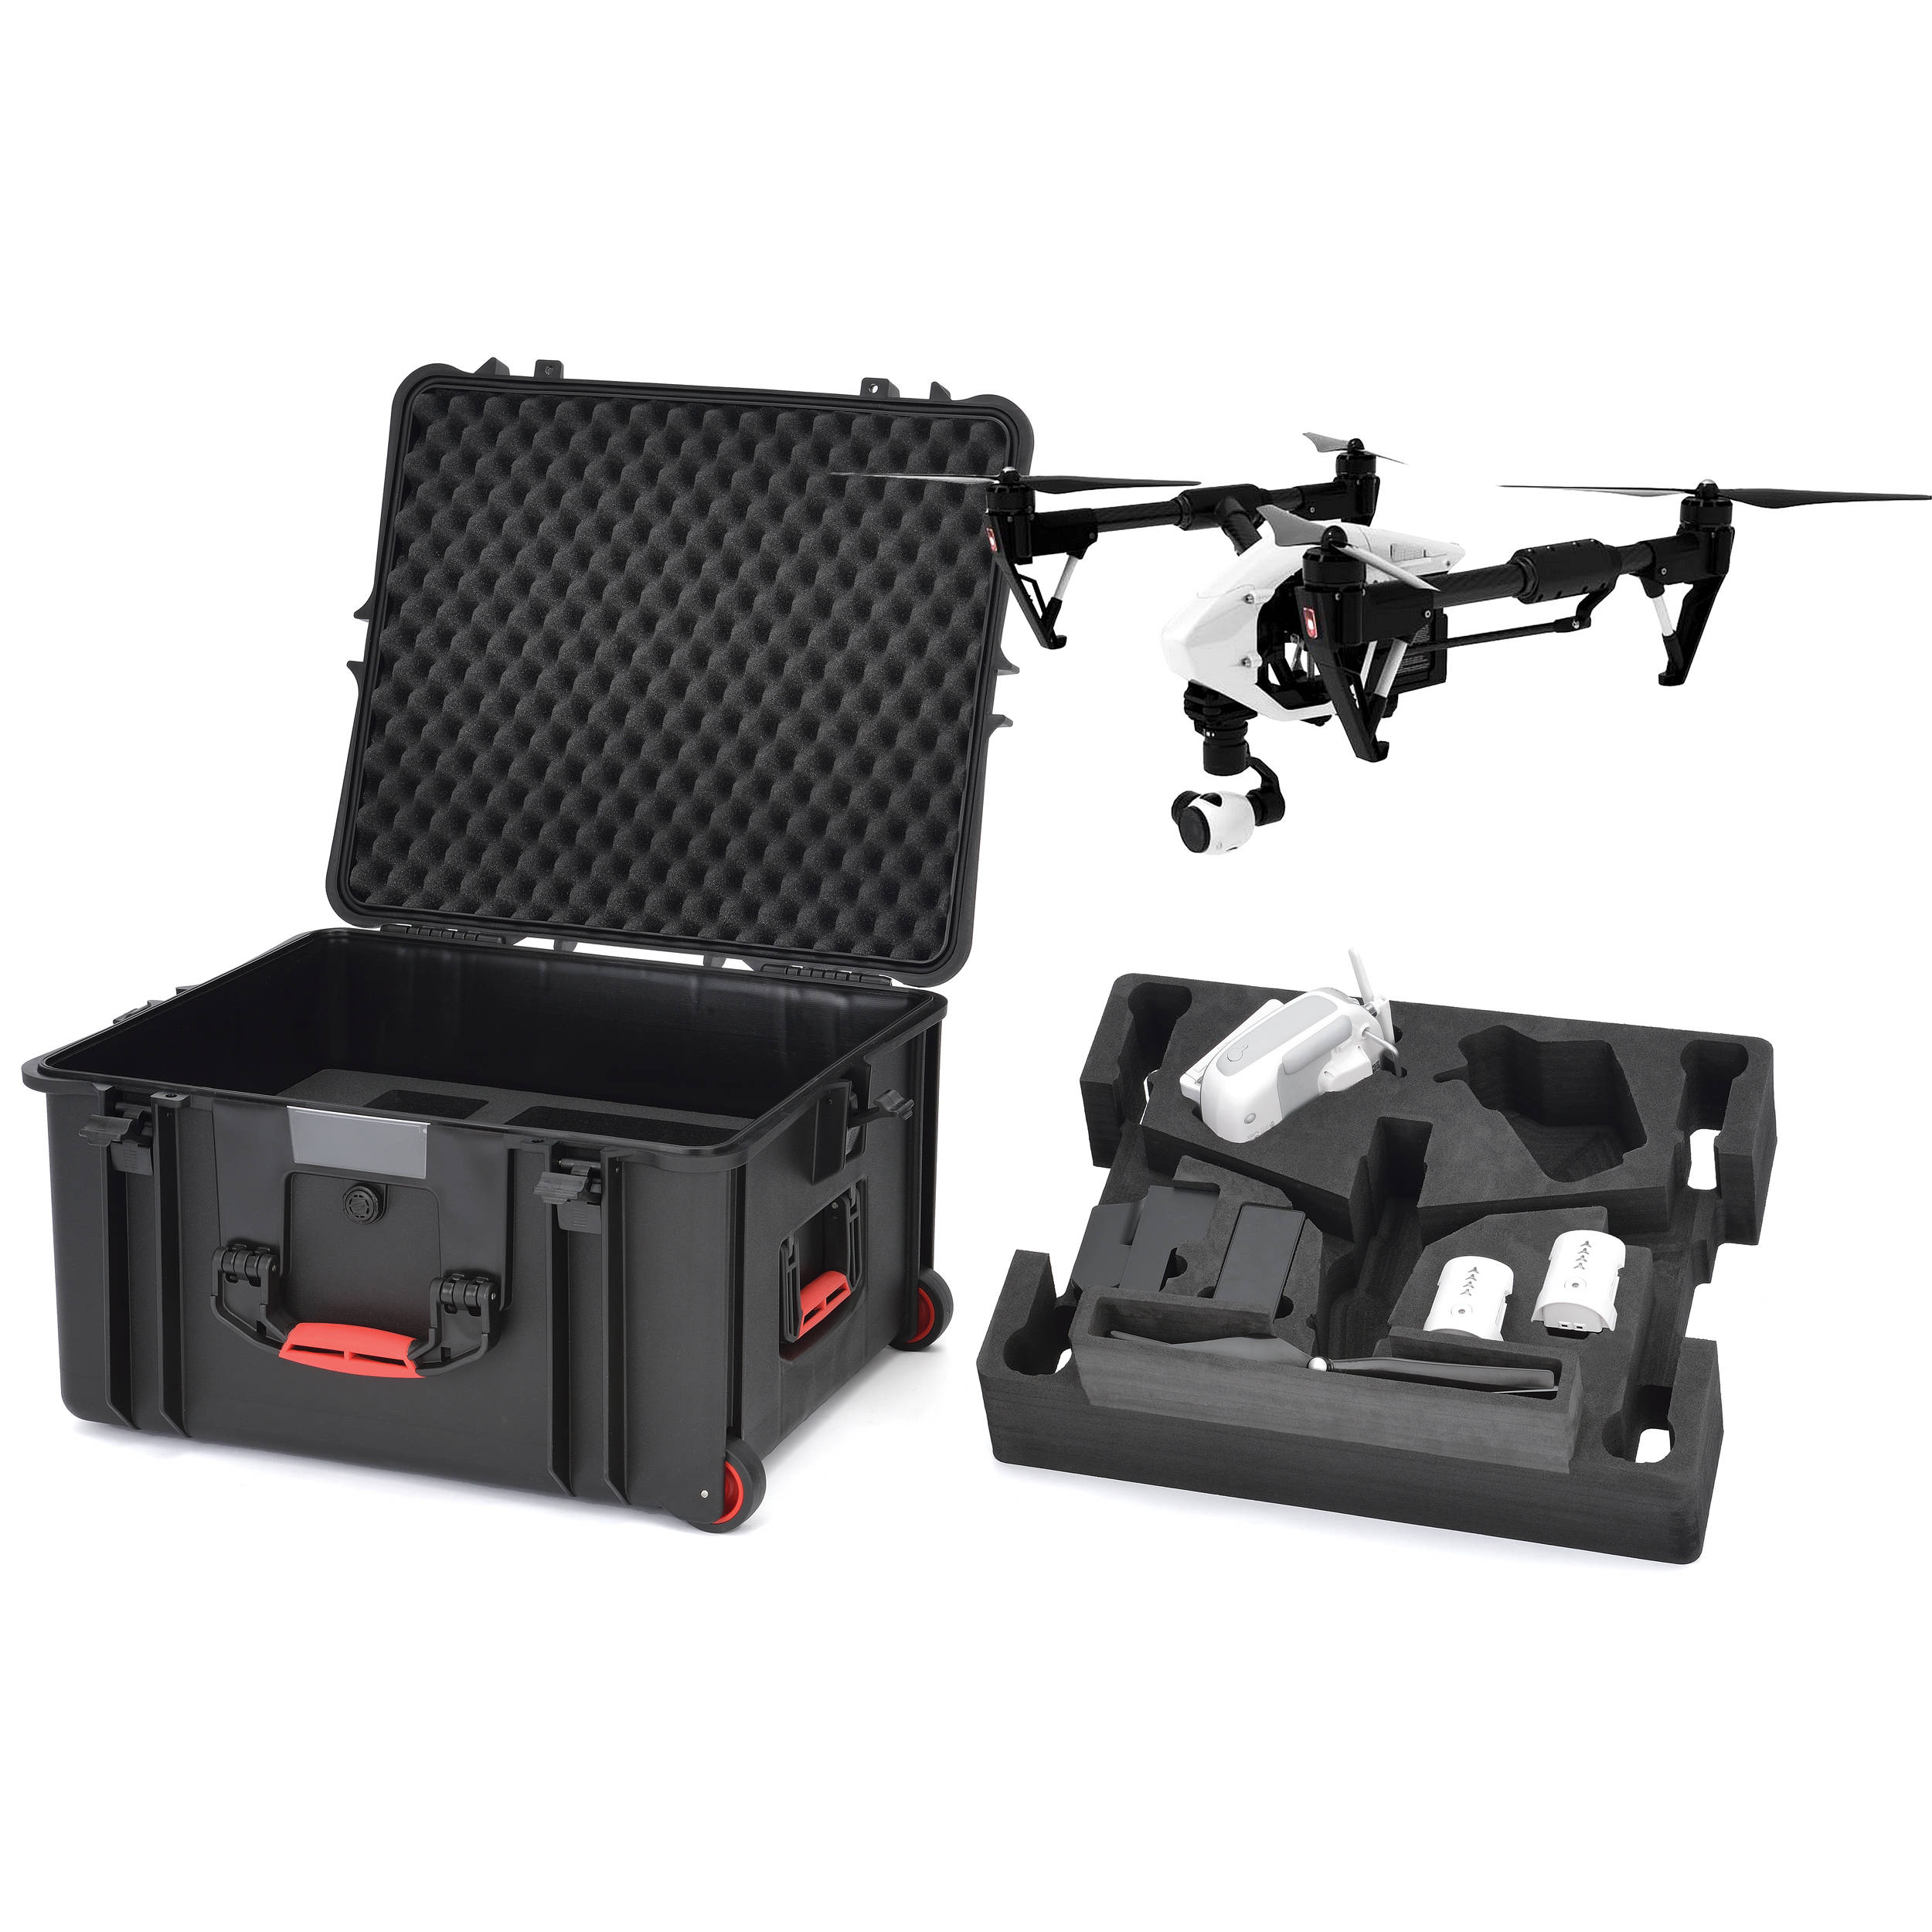 Dji Inspire 1 Raw Made For Professionals Uav Systems International Battery Balancer Lipo Helipal Case